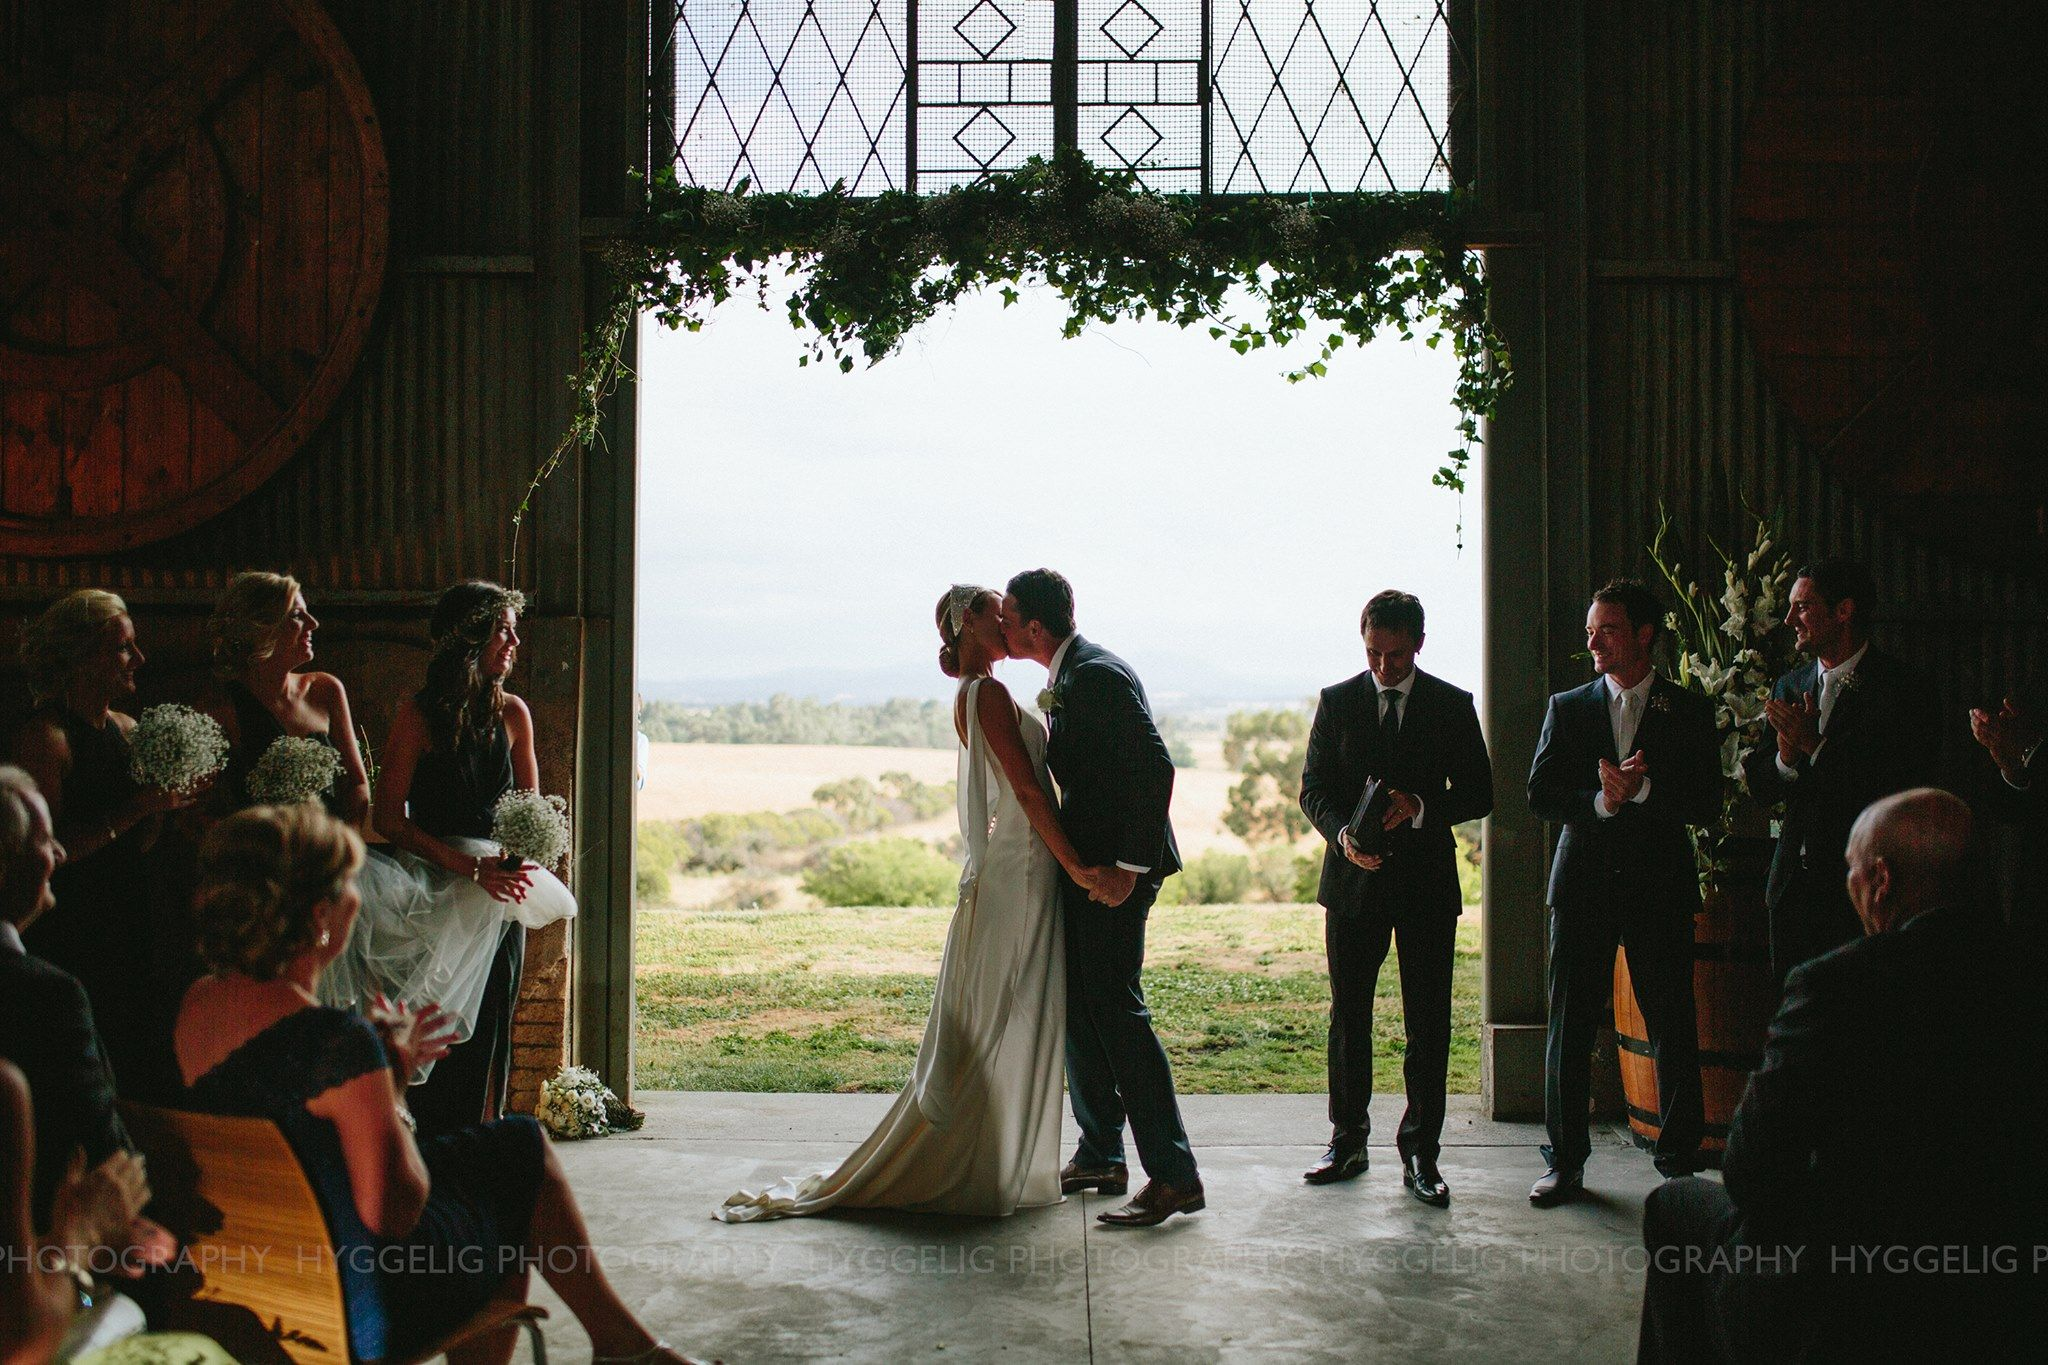 Ceremony In Zonzo S Barn Http Hyggeligphotography Au Its The Cliffs Valley Country Club Weddings